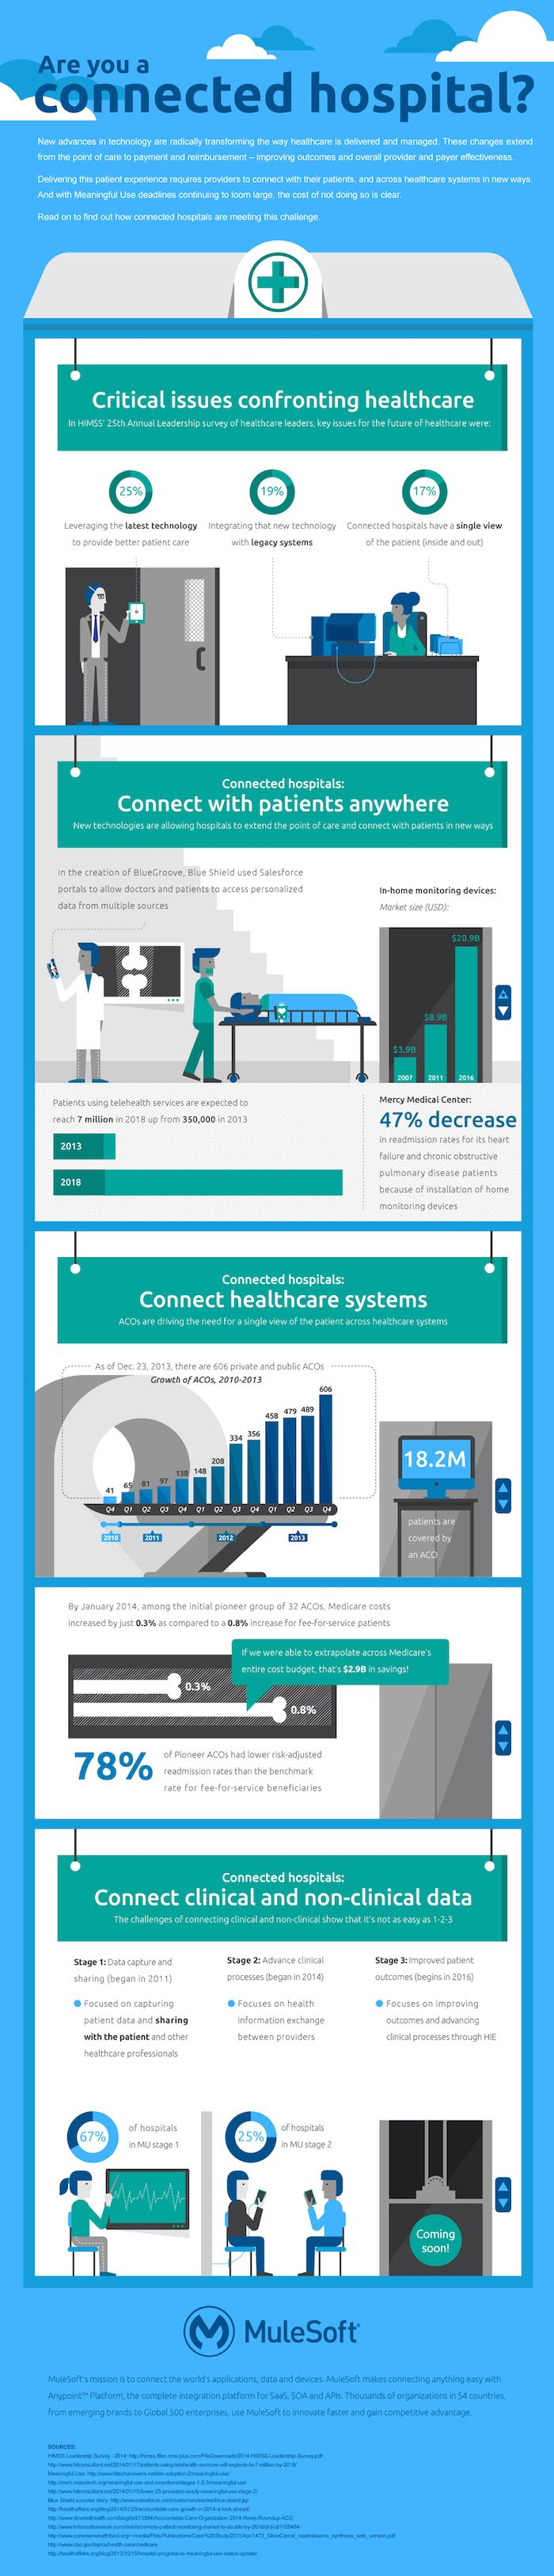 The future of healthcare. Is your hospital connected? www.mpaagroup.com #HIE #interoperability